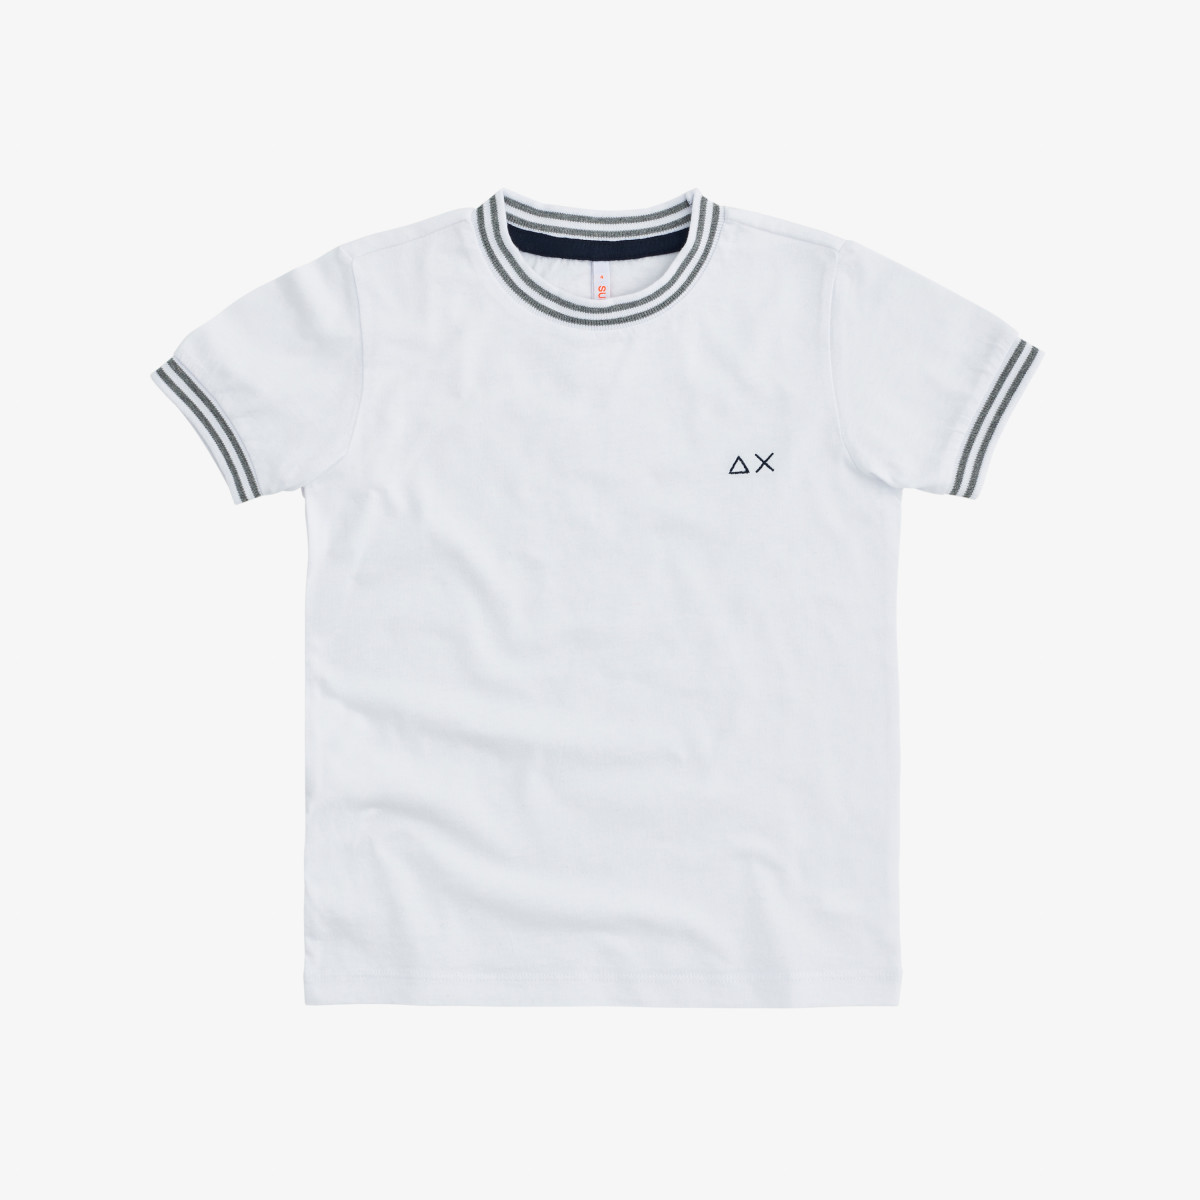 BOY'S T-SHIRT ROUND KNIT RIB CUFFS & COLLAR WHITE